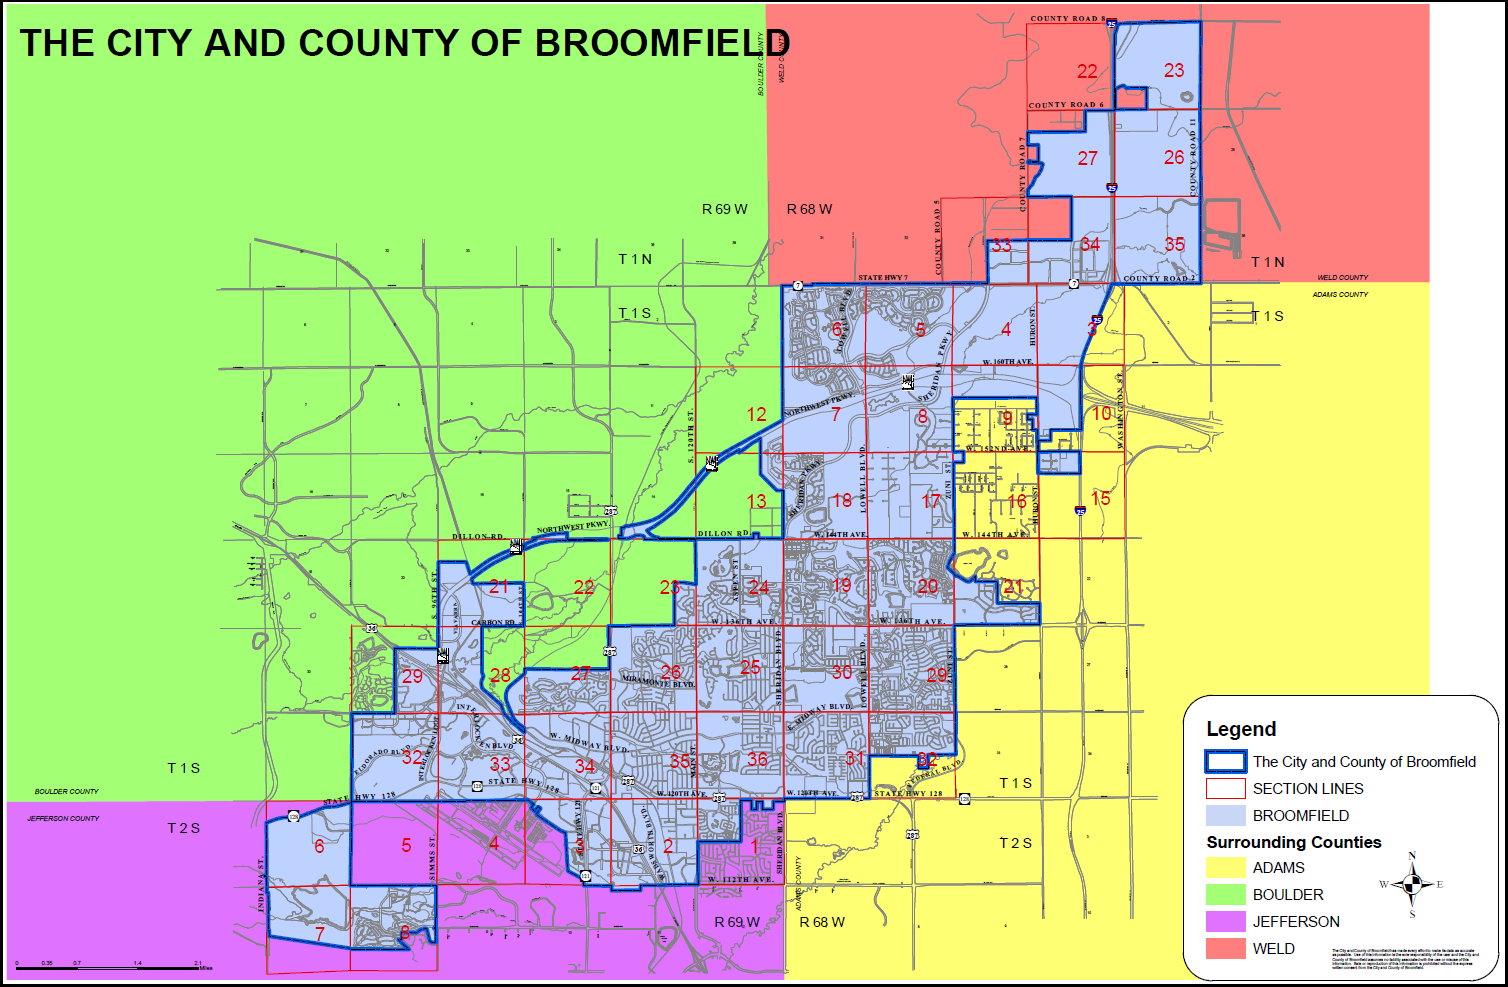 Resident Boundaries for Broomfield